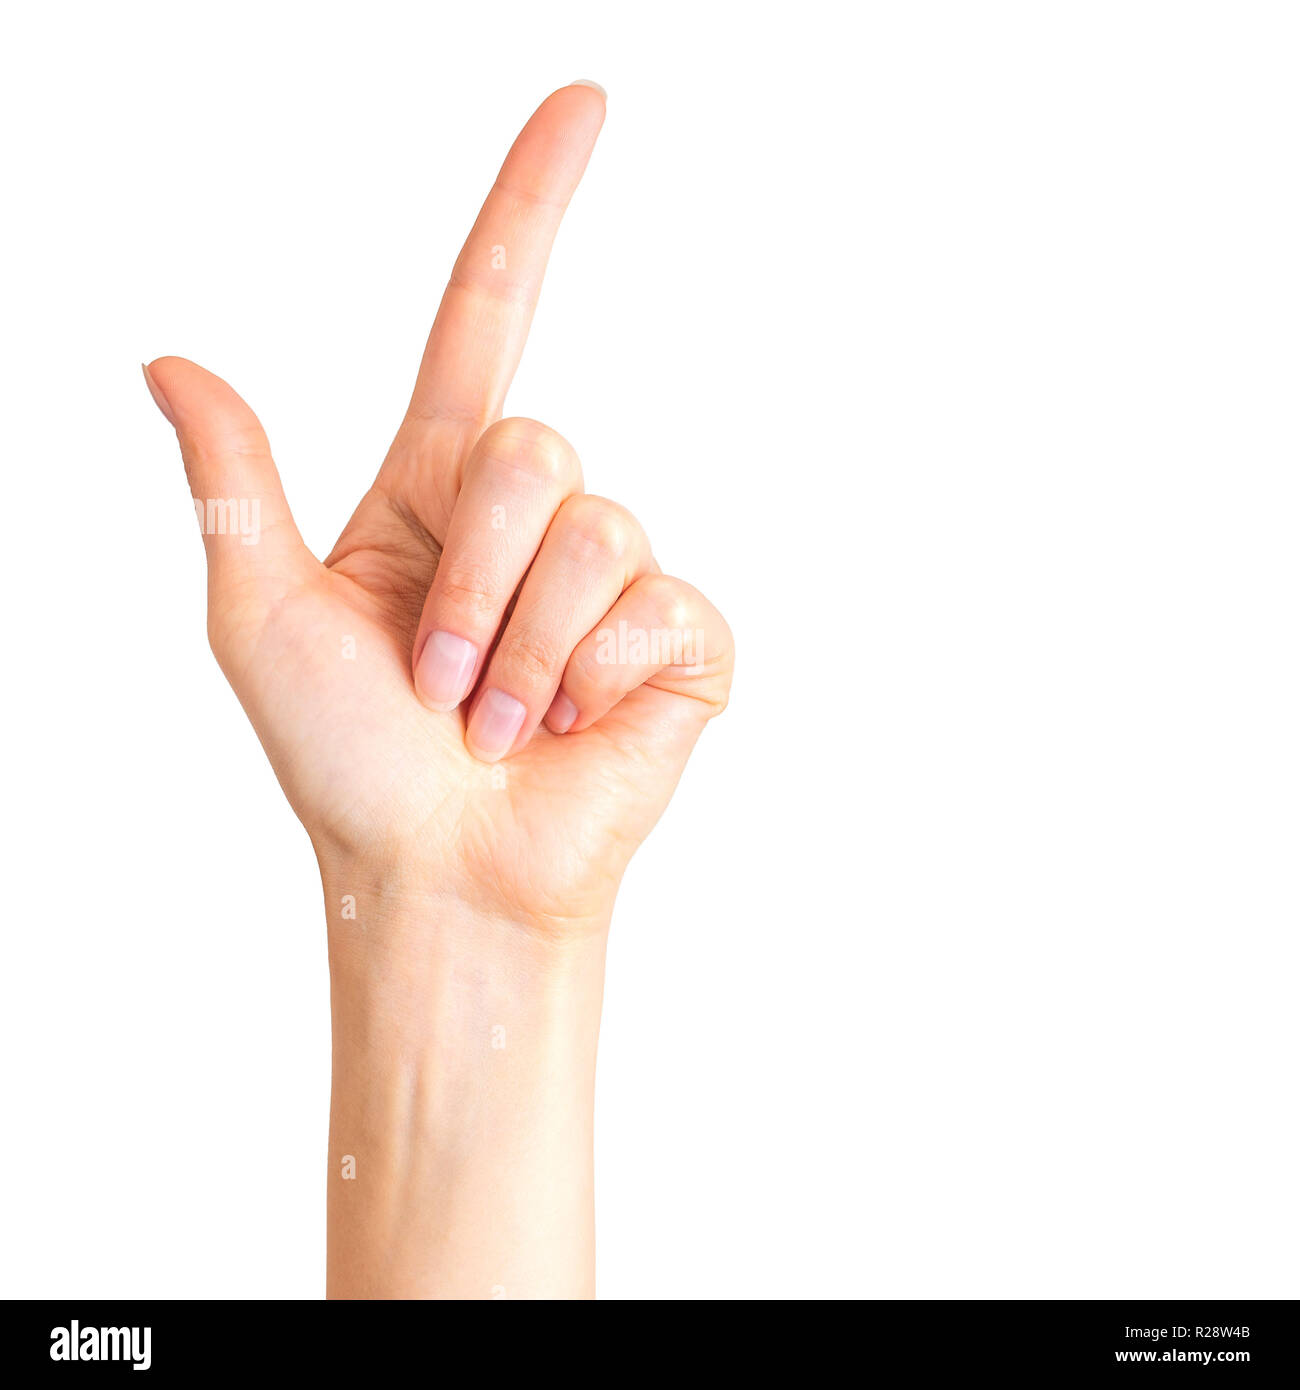 Woman hand with the index finger pointing up or showing loser gesture - Stock Image